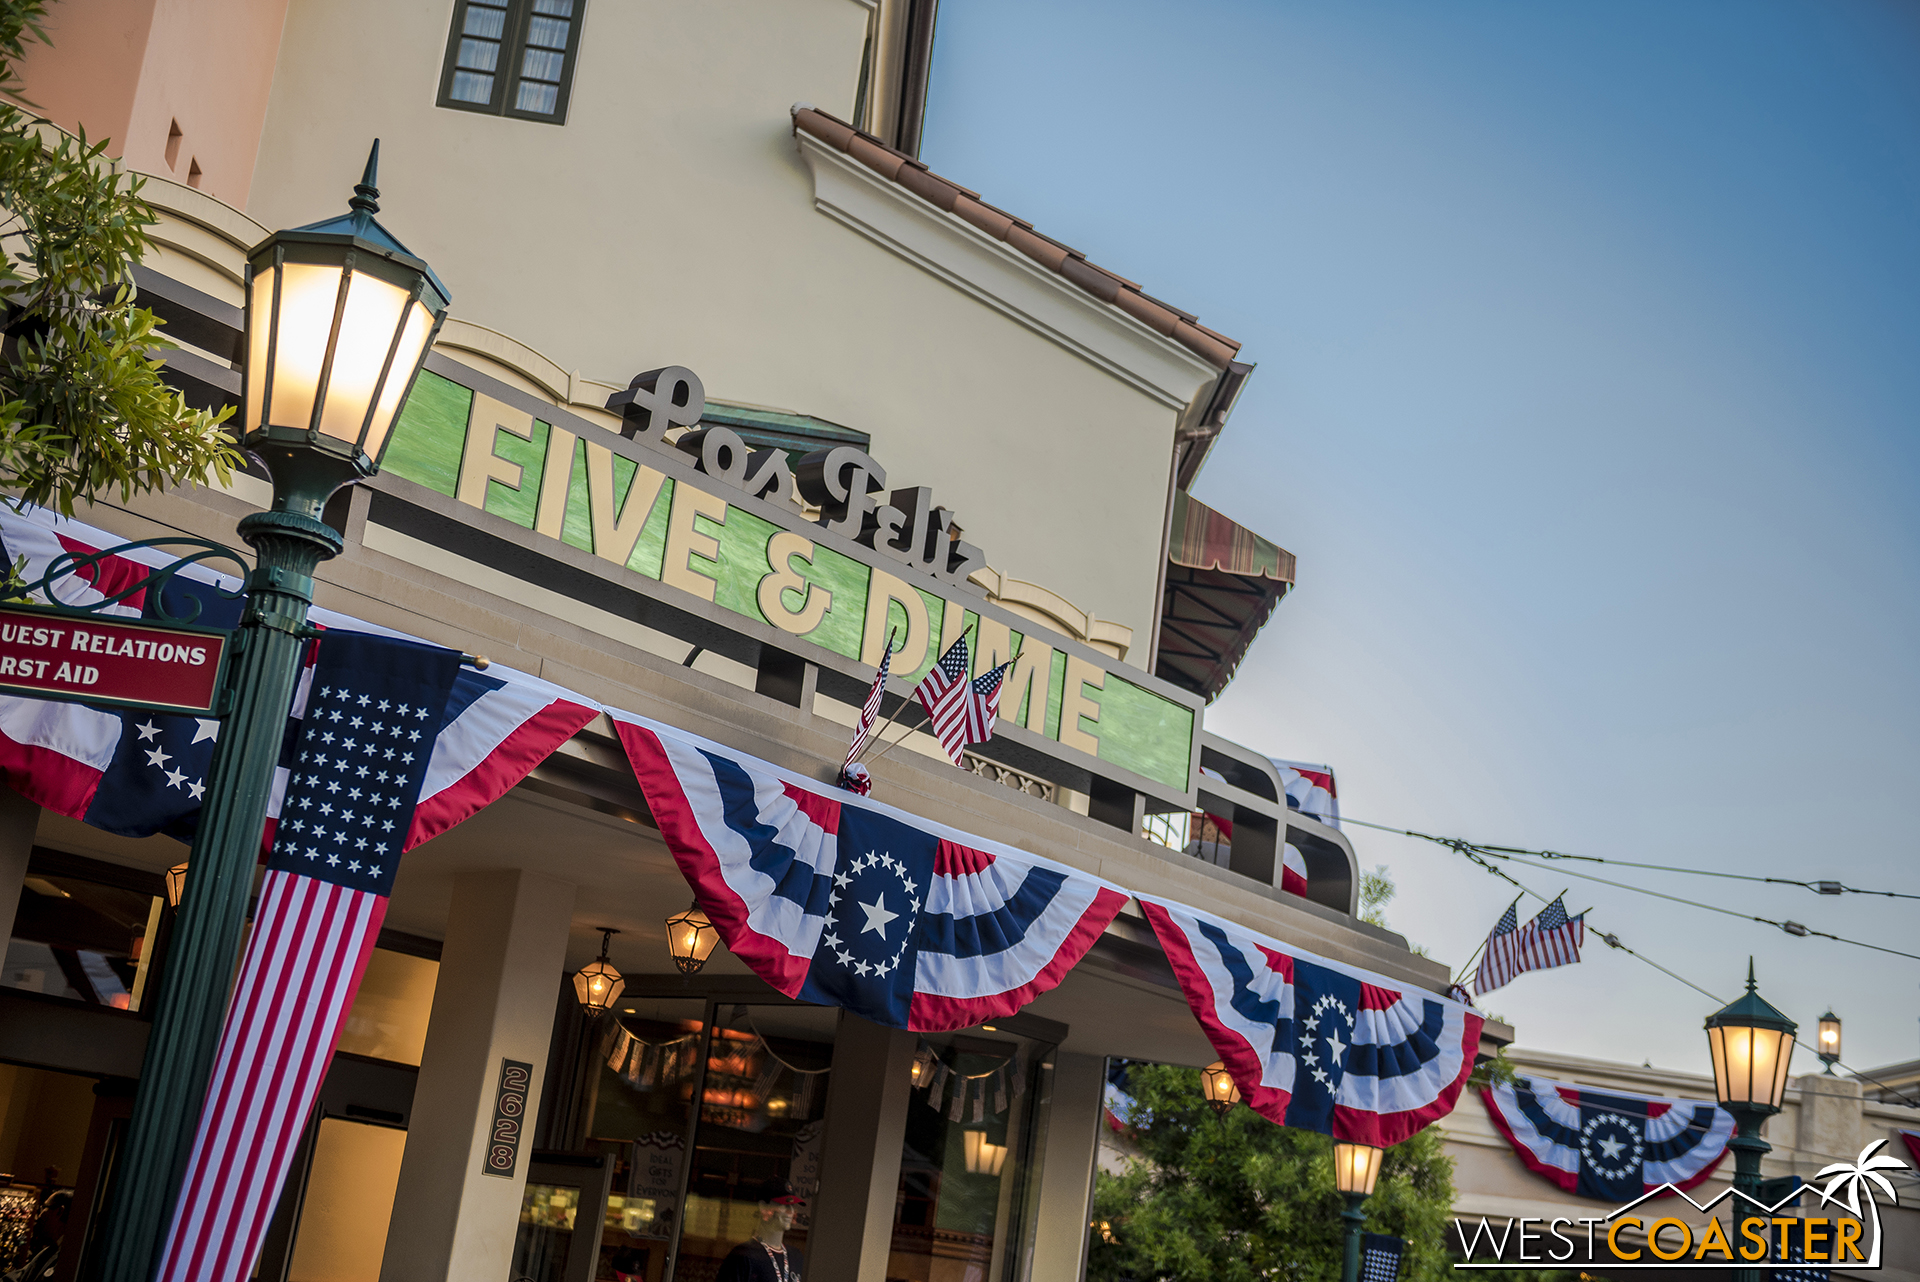 New patriotic decorations at Buena Vista Street this weekend.